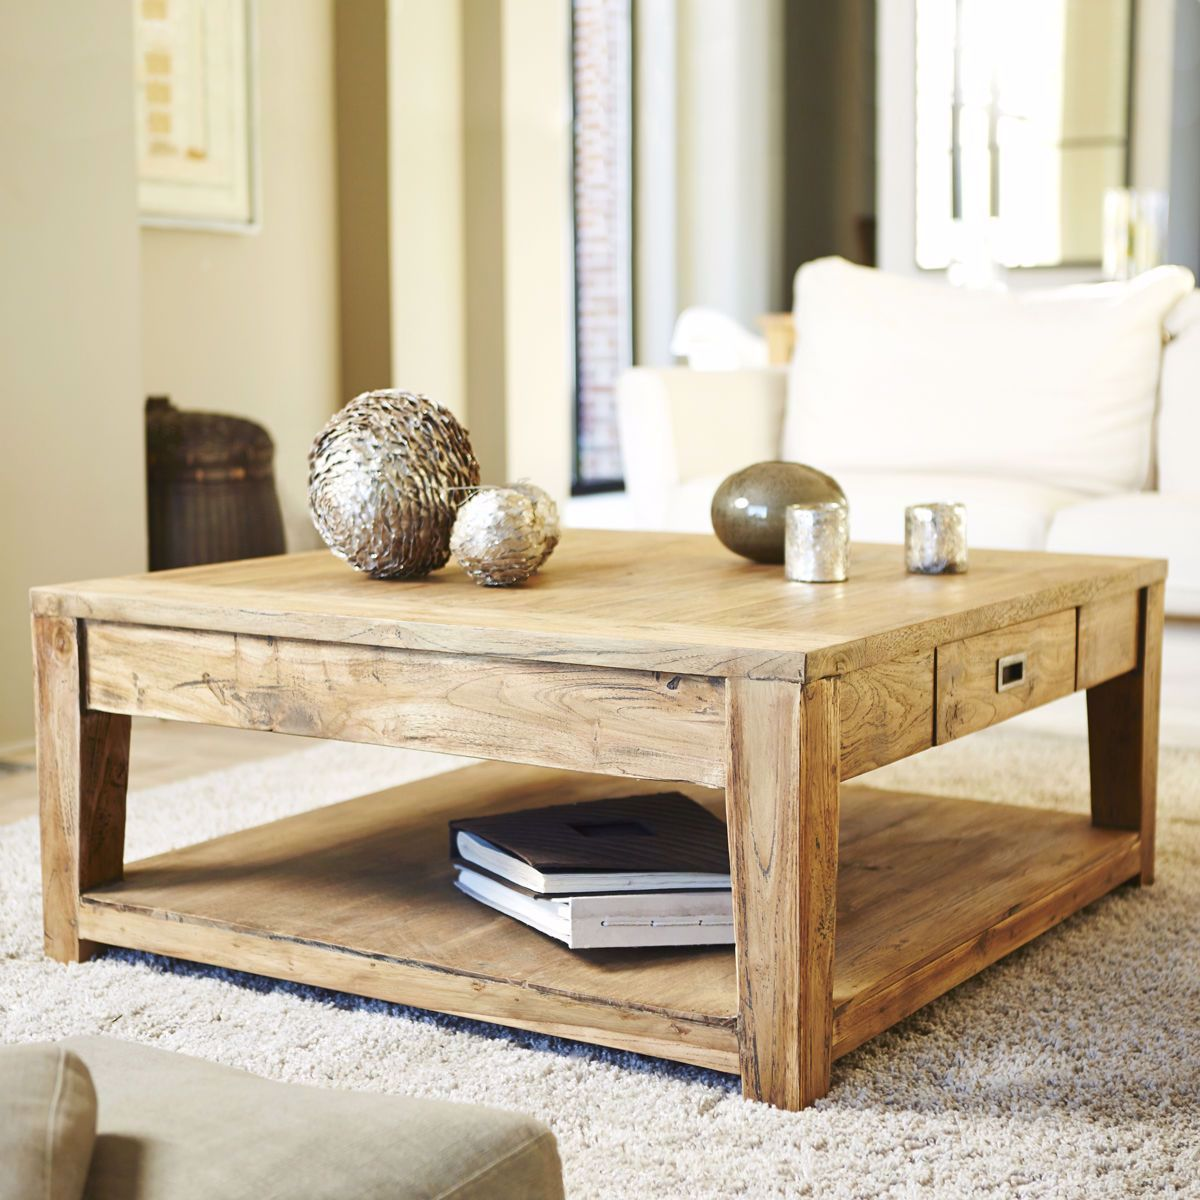 Table Basse Carree Teck Recycle 100cm In 2020 Home Coffee Tables